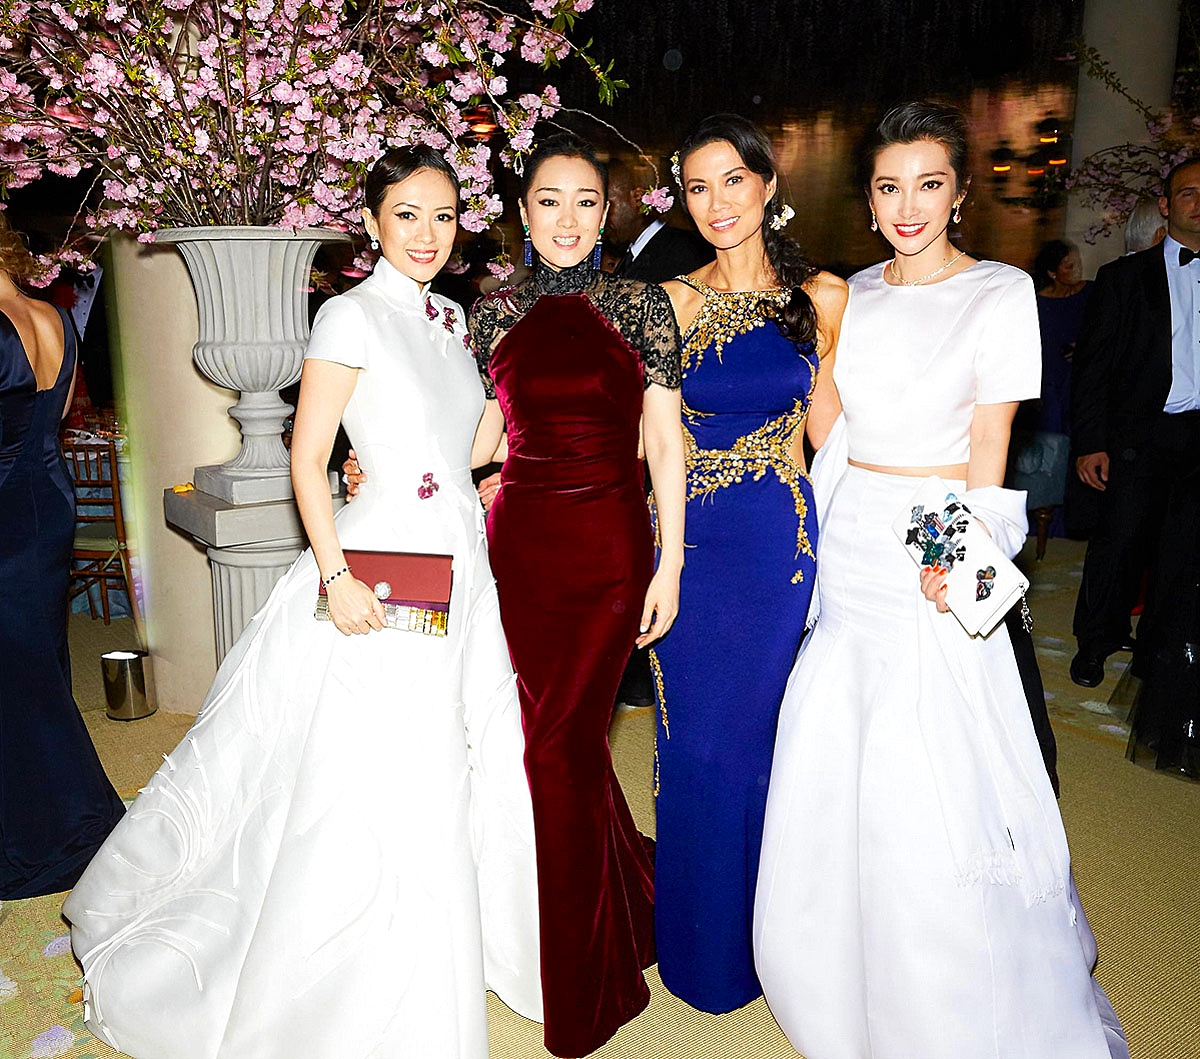 Zhang Ziyi, Gong Li, Wendi Murdoch, and Li Bingbing           Photo: David X Prutting/bfanyc.com